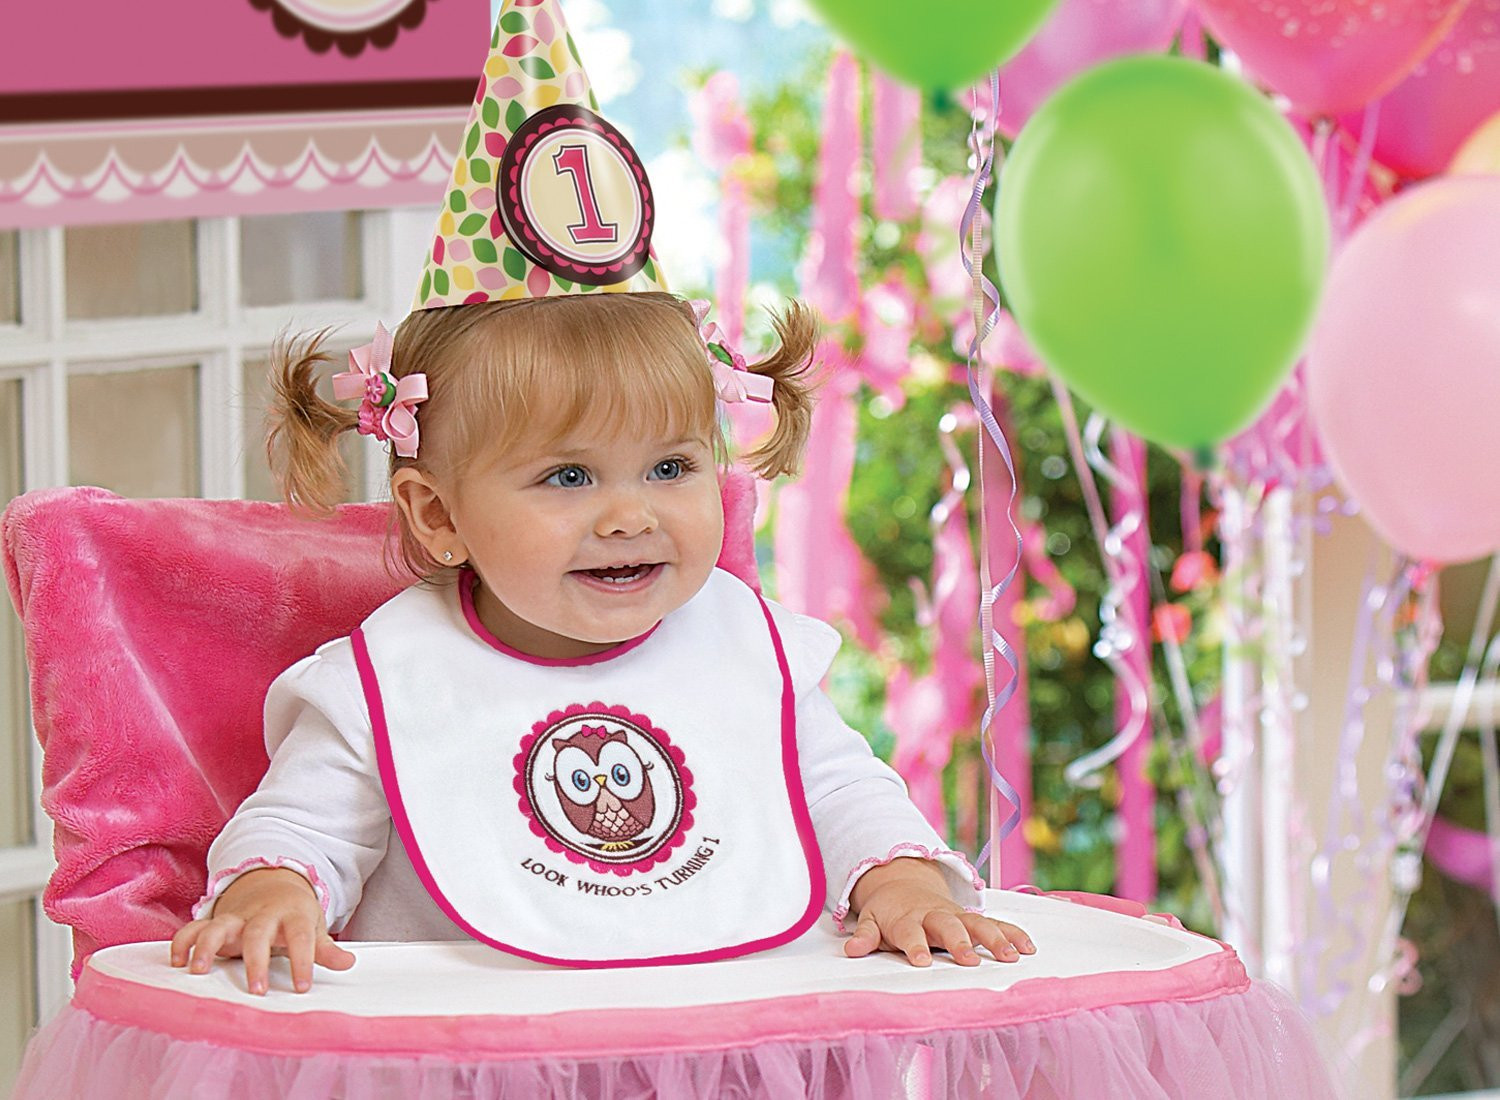 Baby Girls 1St Birthday Party Supplies  22 Fun Ideas For Your Baby Girl s First Birthday Shoot